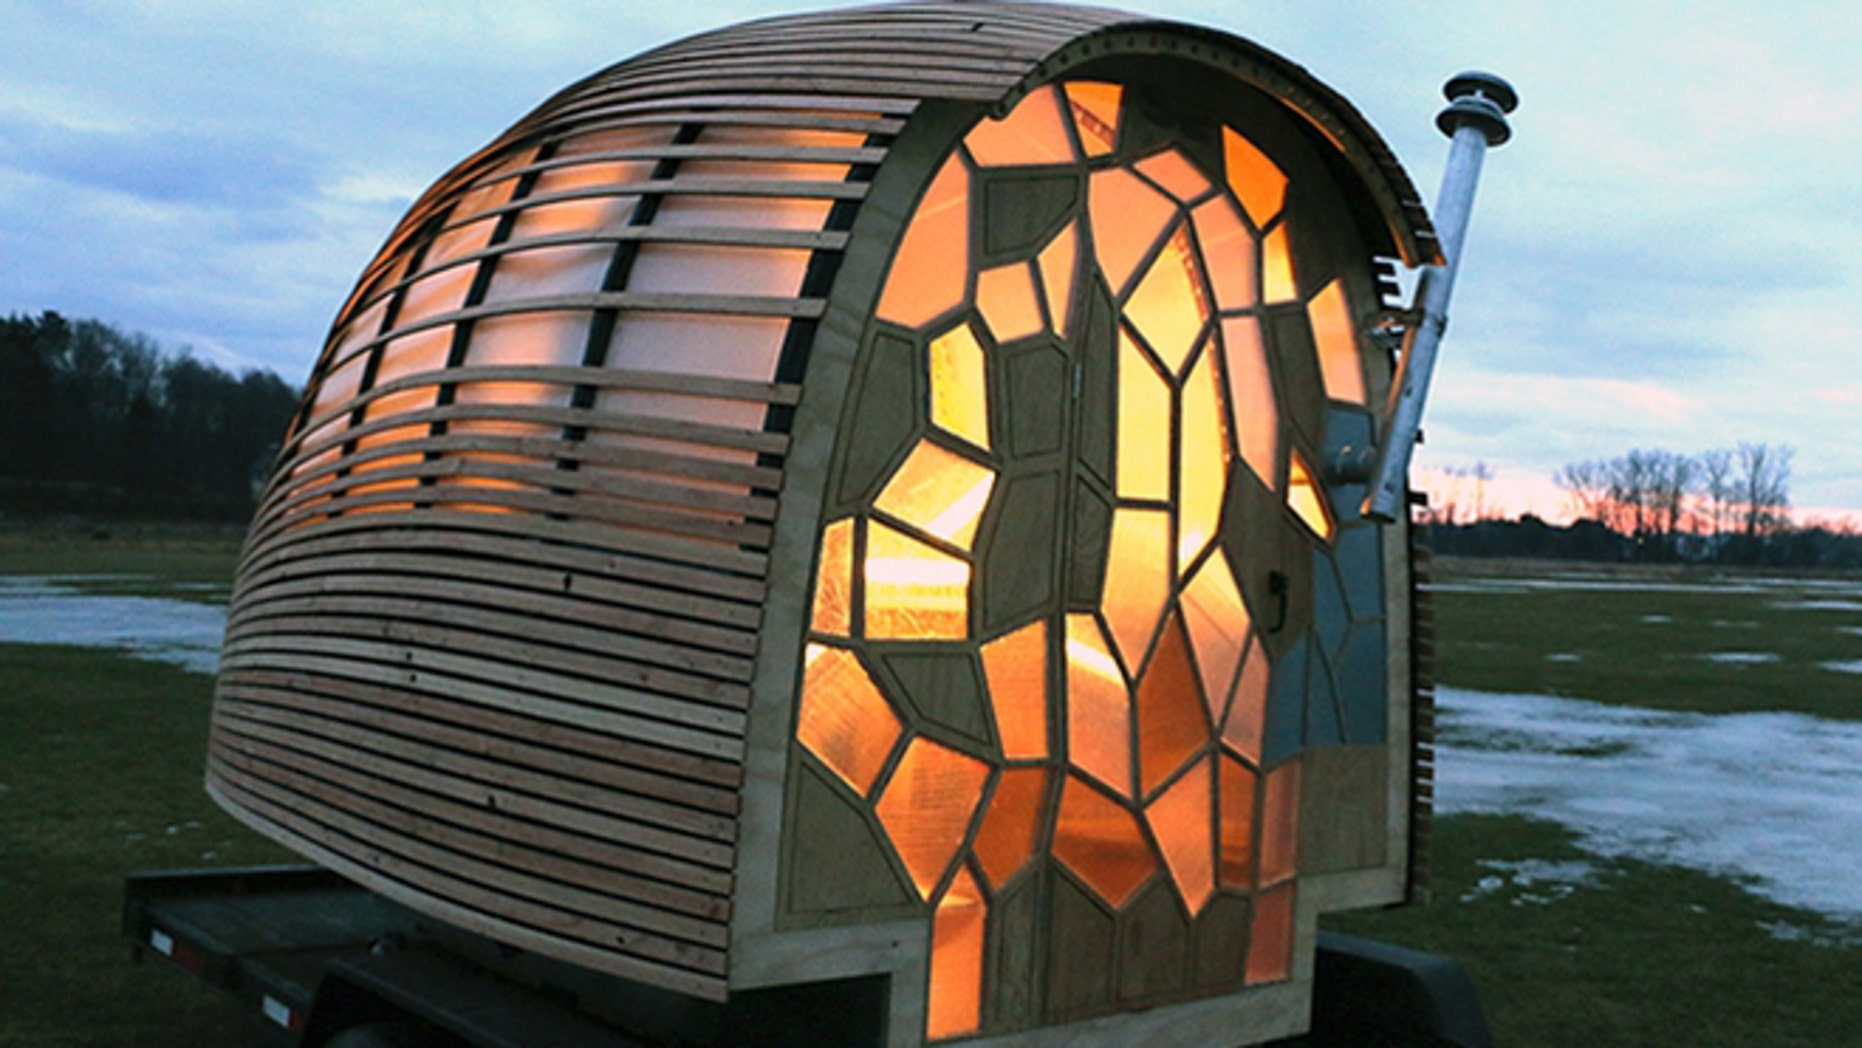 Made by 16 college kids from Vermont, the OTIS pod home features a rainwater collection system for indoor plumbing and stained-glass like privacy windows. It can also be towed by a four-cylinder vehicle.